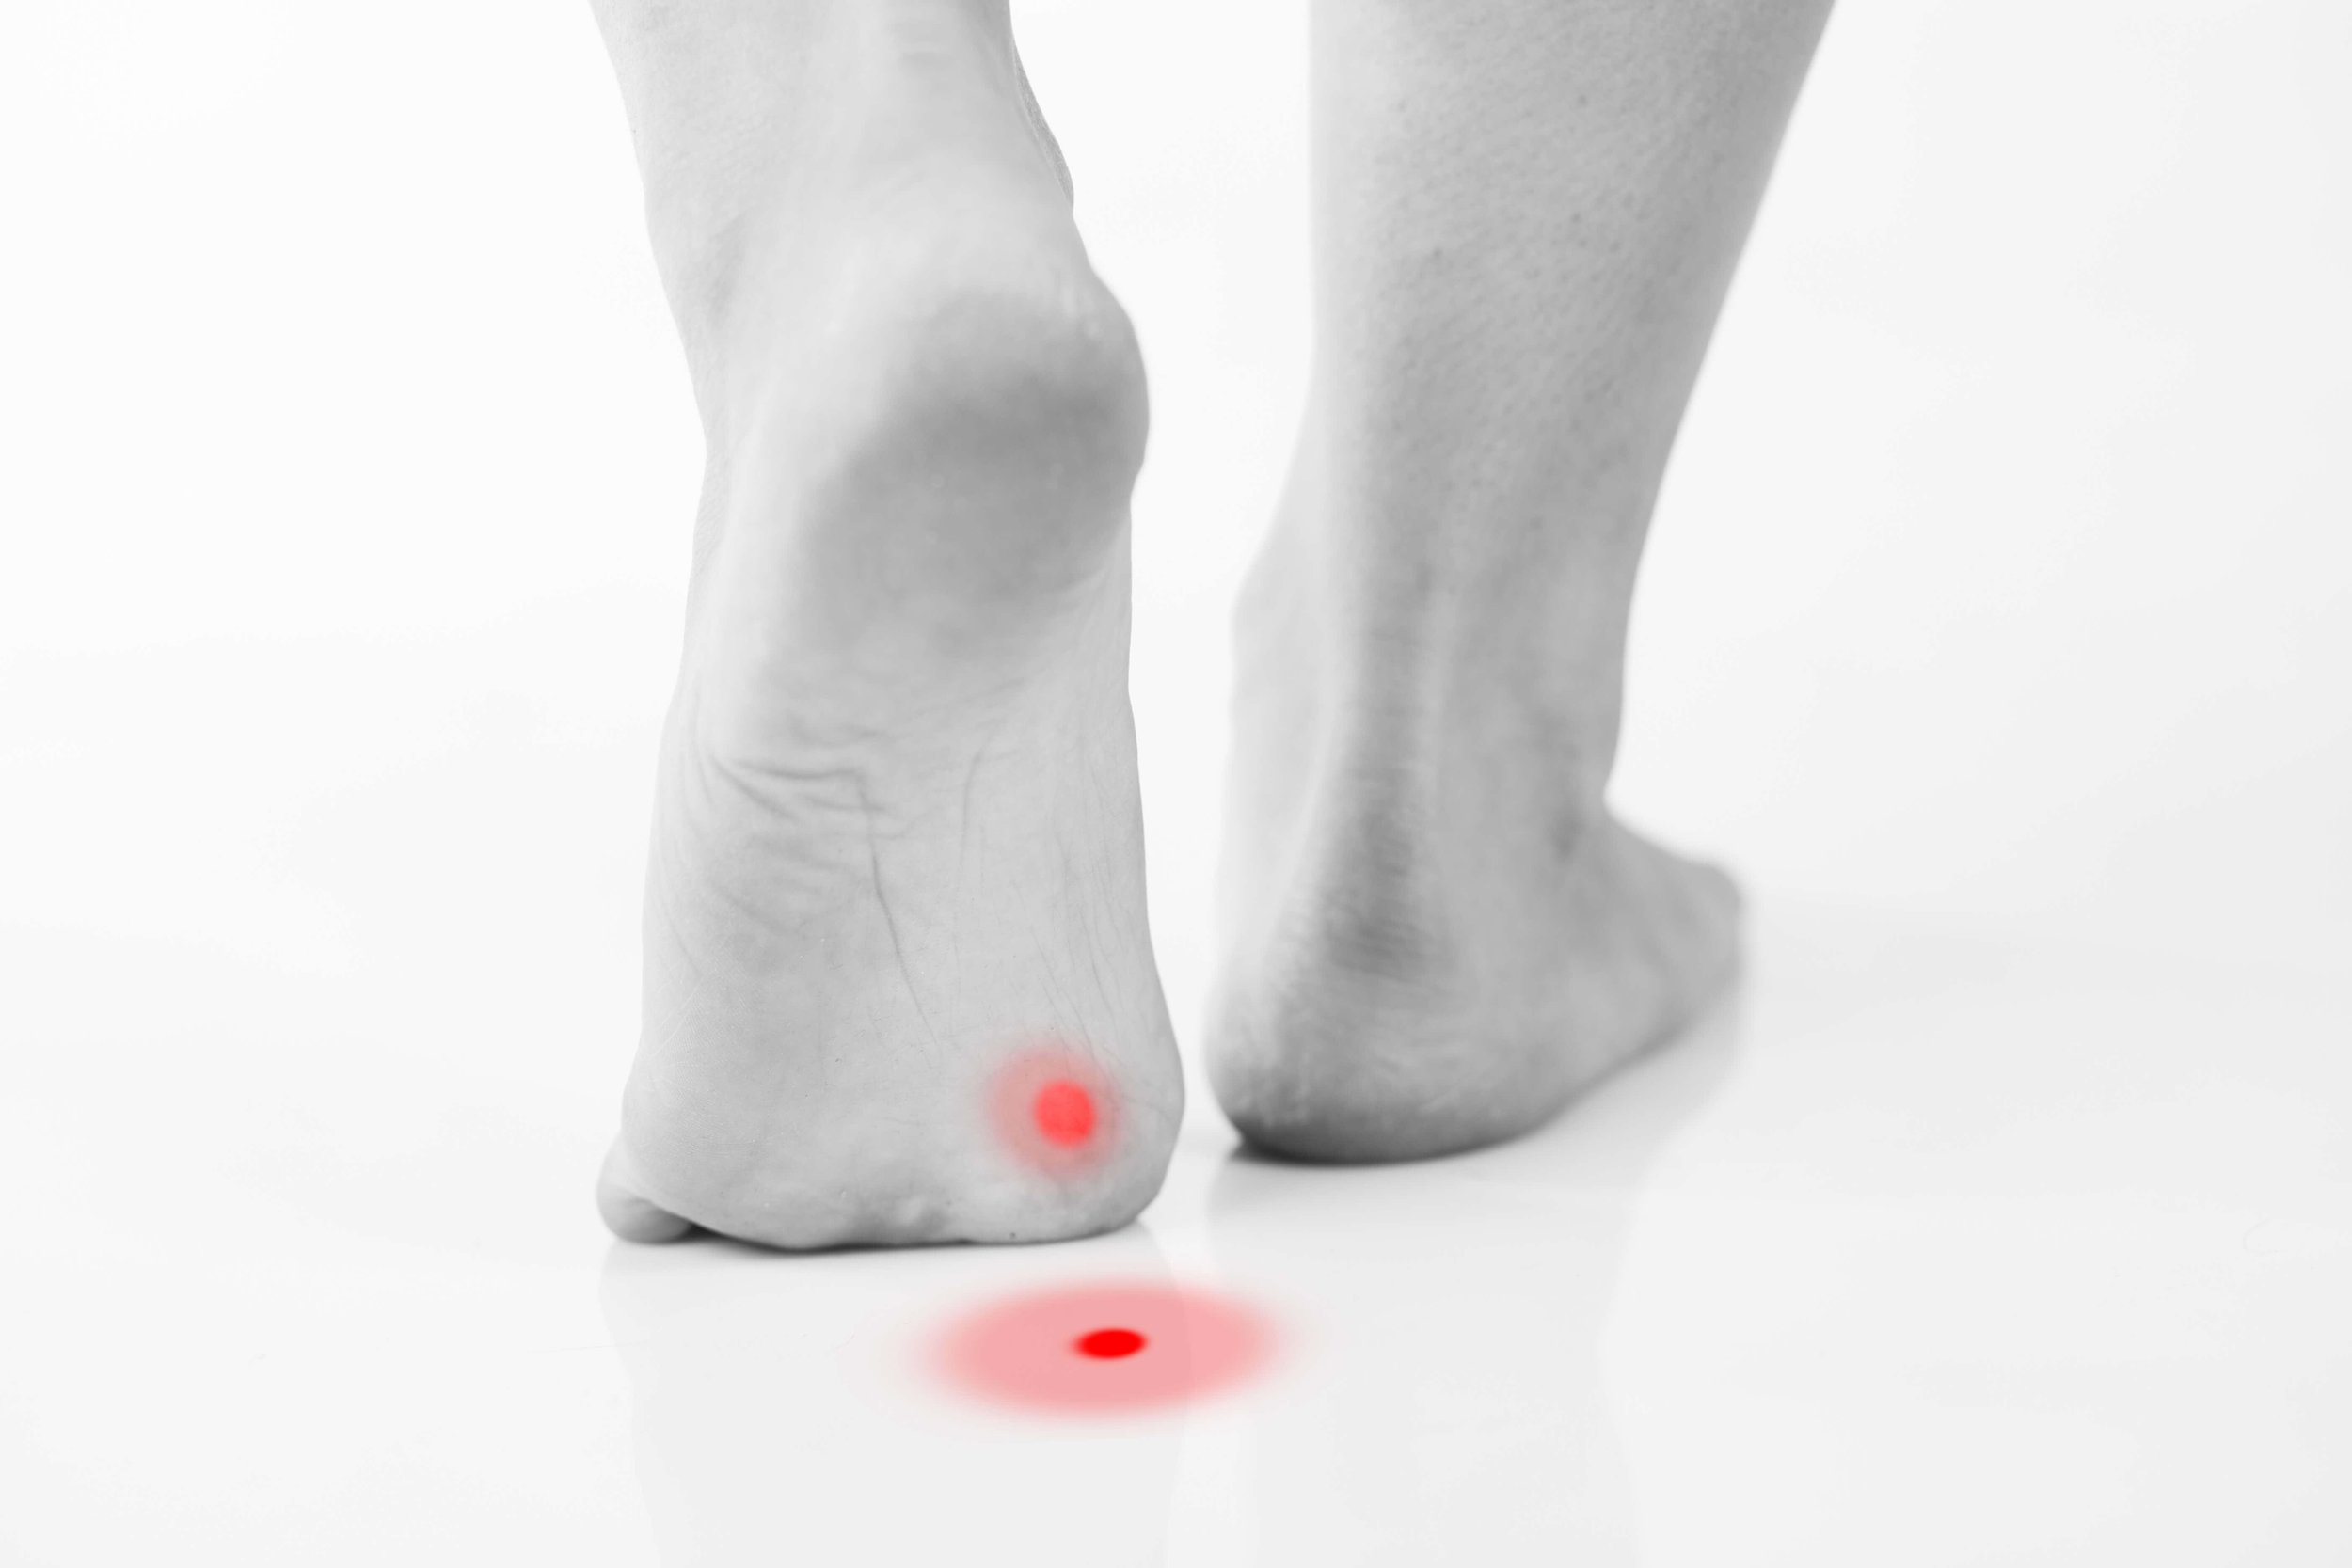 Diabetes and Your Foot Health